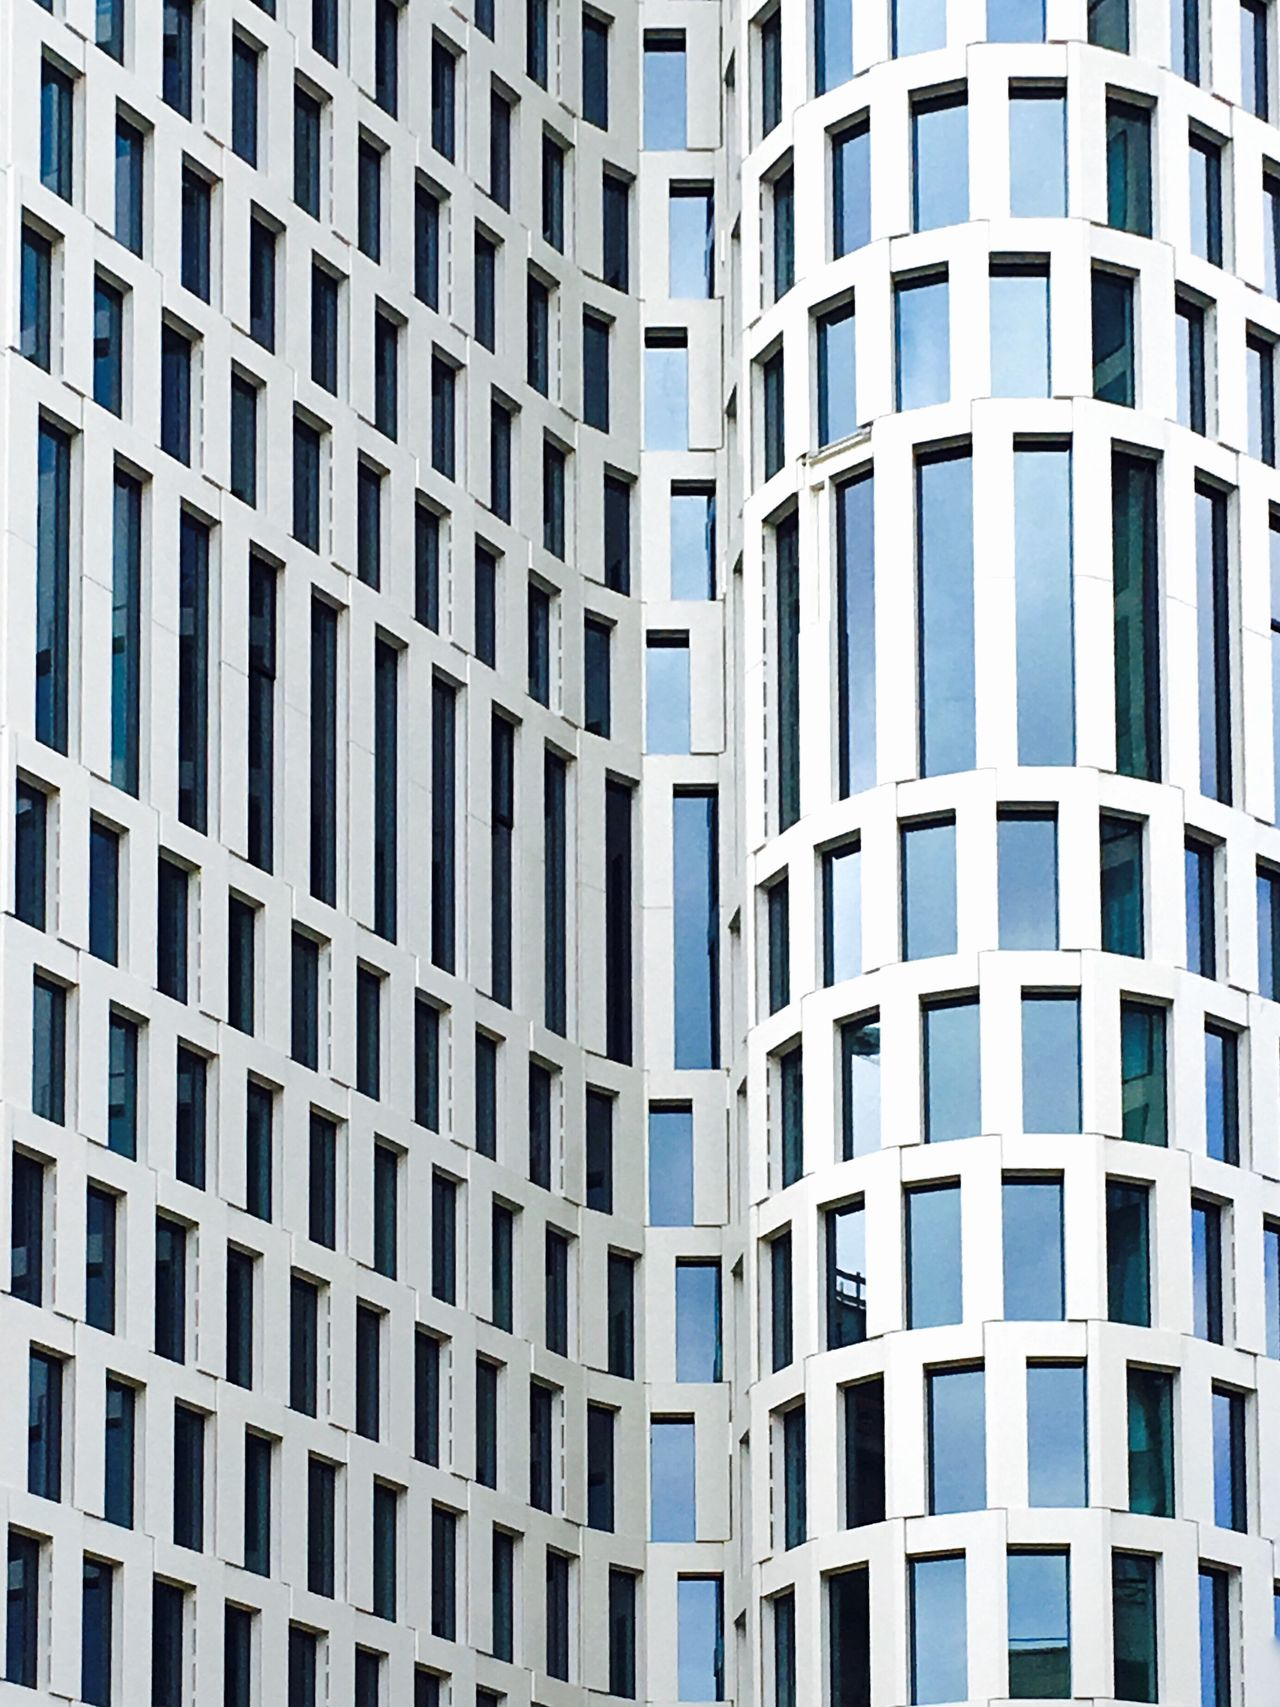 Architecture Geometric Shapes Berliner Ansichten From My Point Of View Perspective Architectural Detail Architecture_collection Architecturelovers Urban Geometry Geometry Windows Window The Architect - 2016 EyeEm Awards